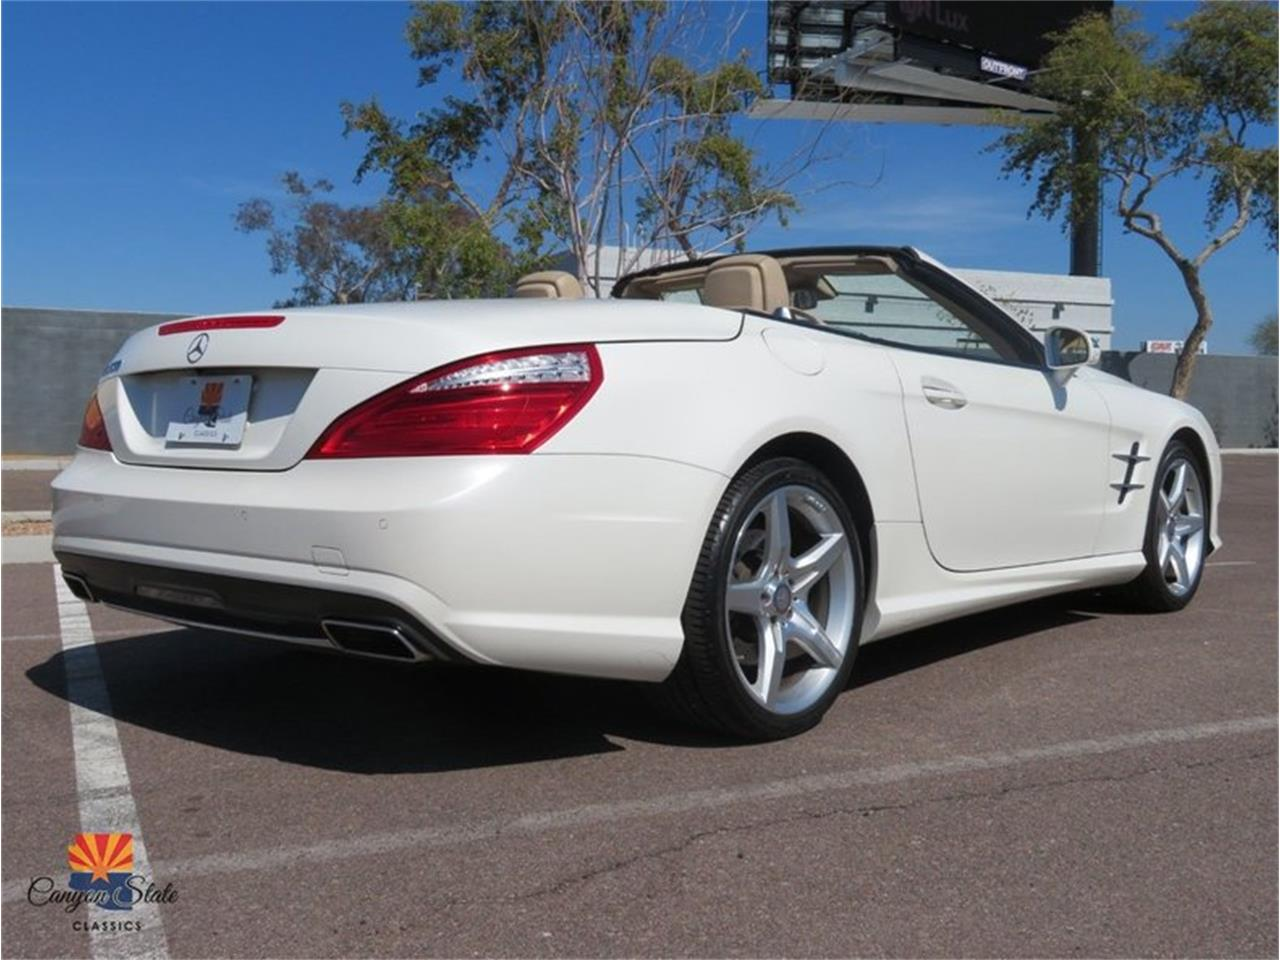 2013 Mercedes-Benz SL-Class for sale in Tempe, AZ – photo 44